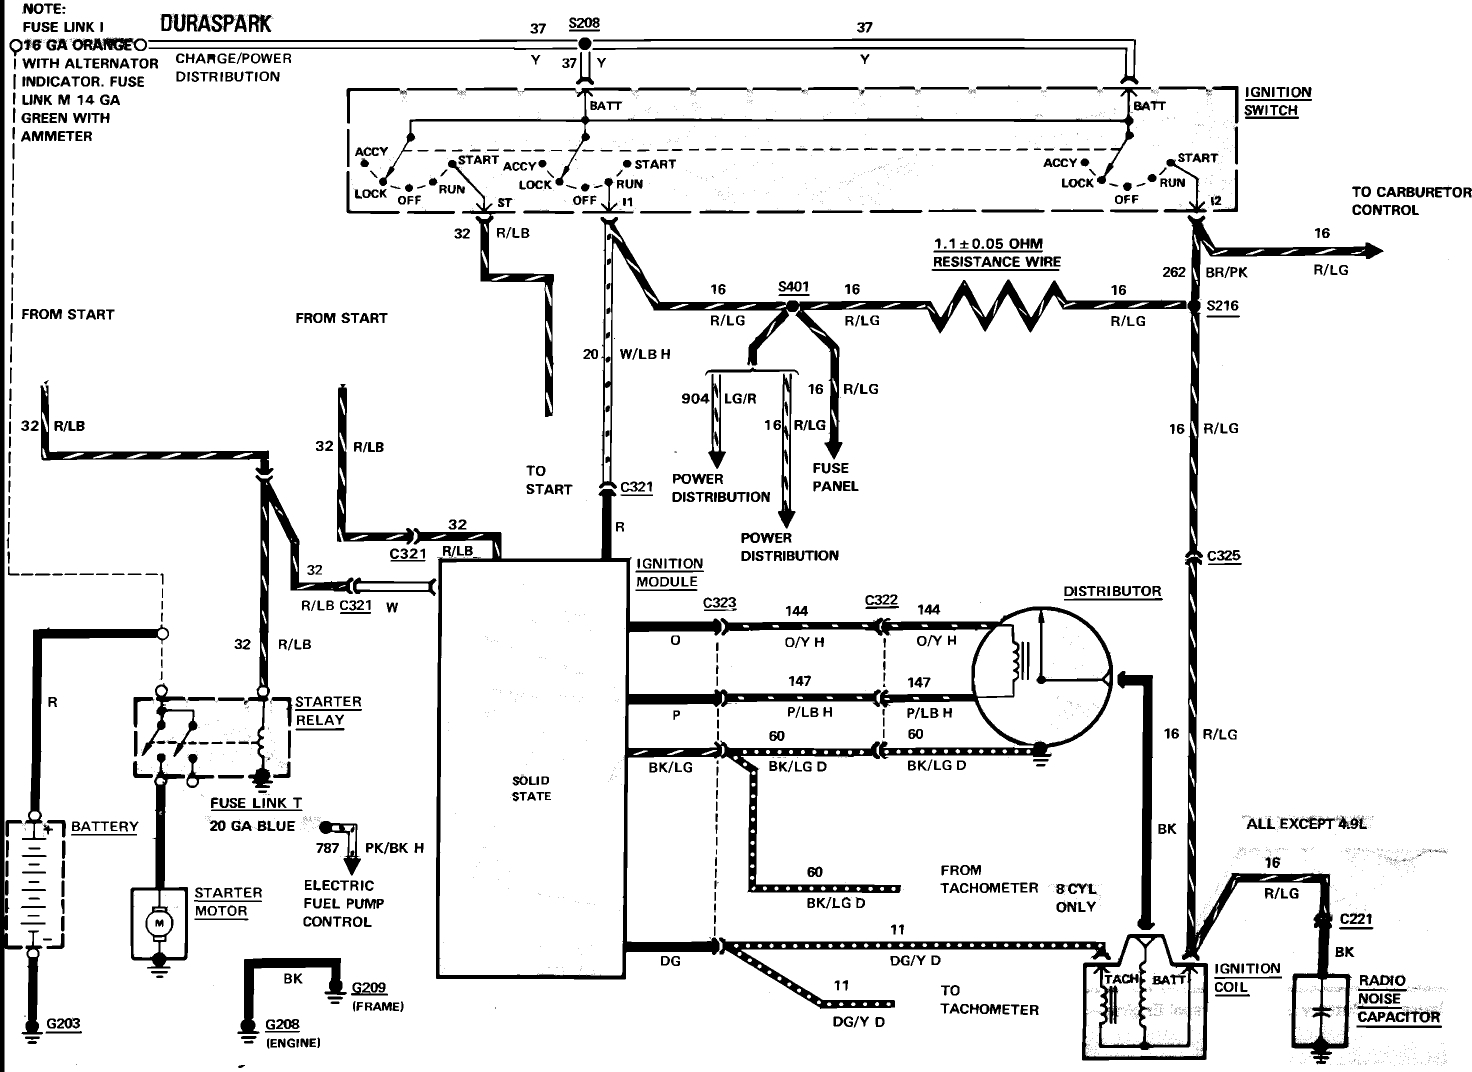 1998 mustang fuel pump wiring diagram